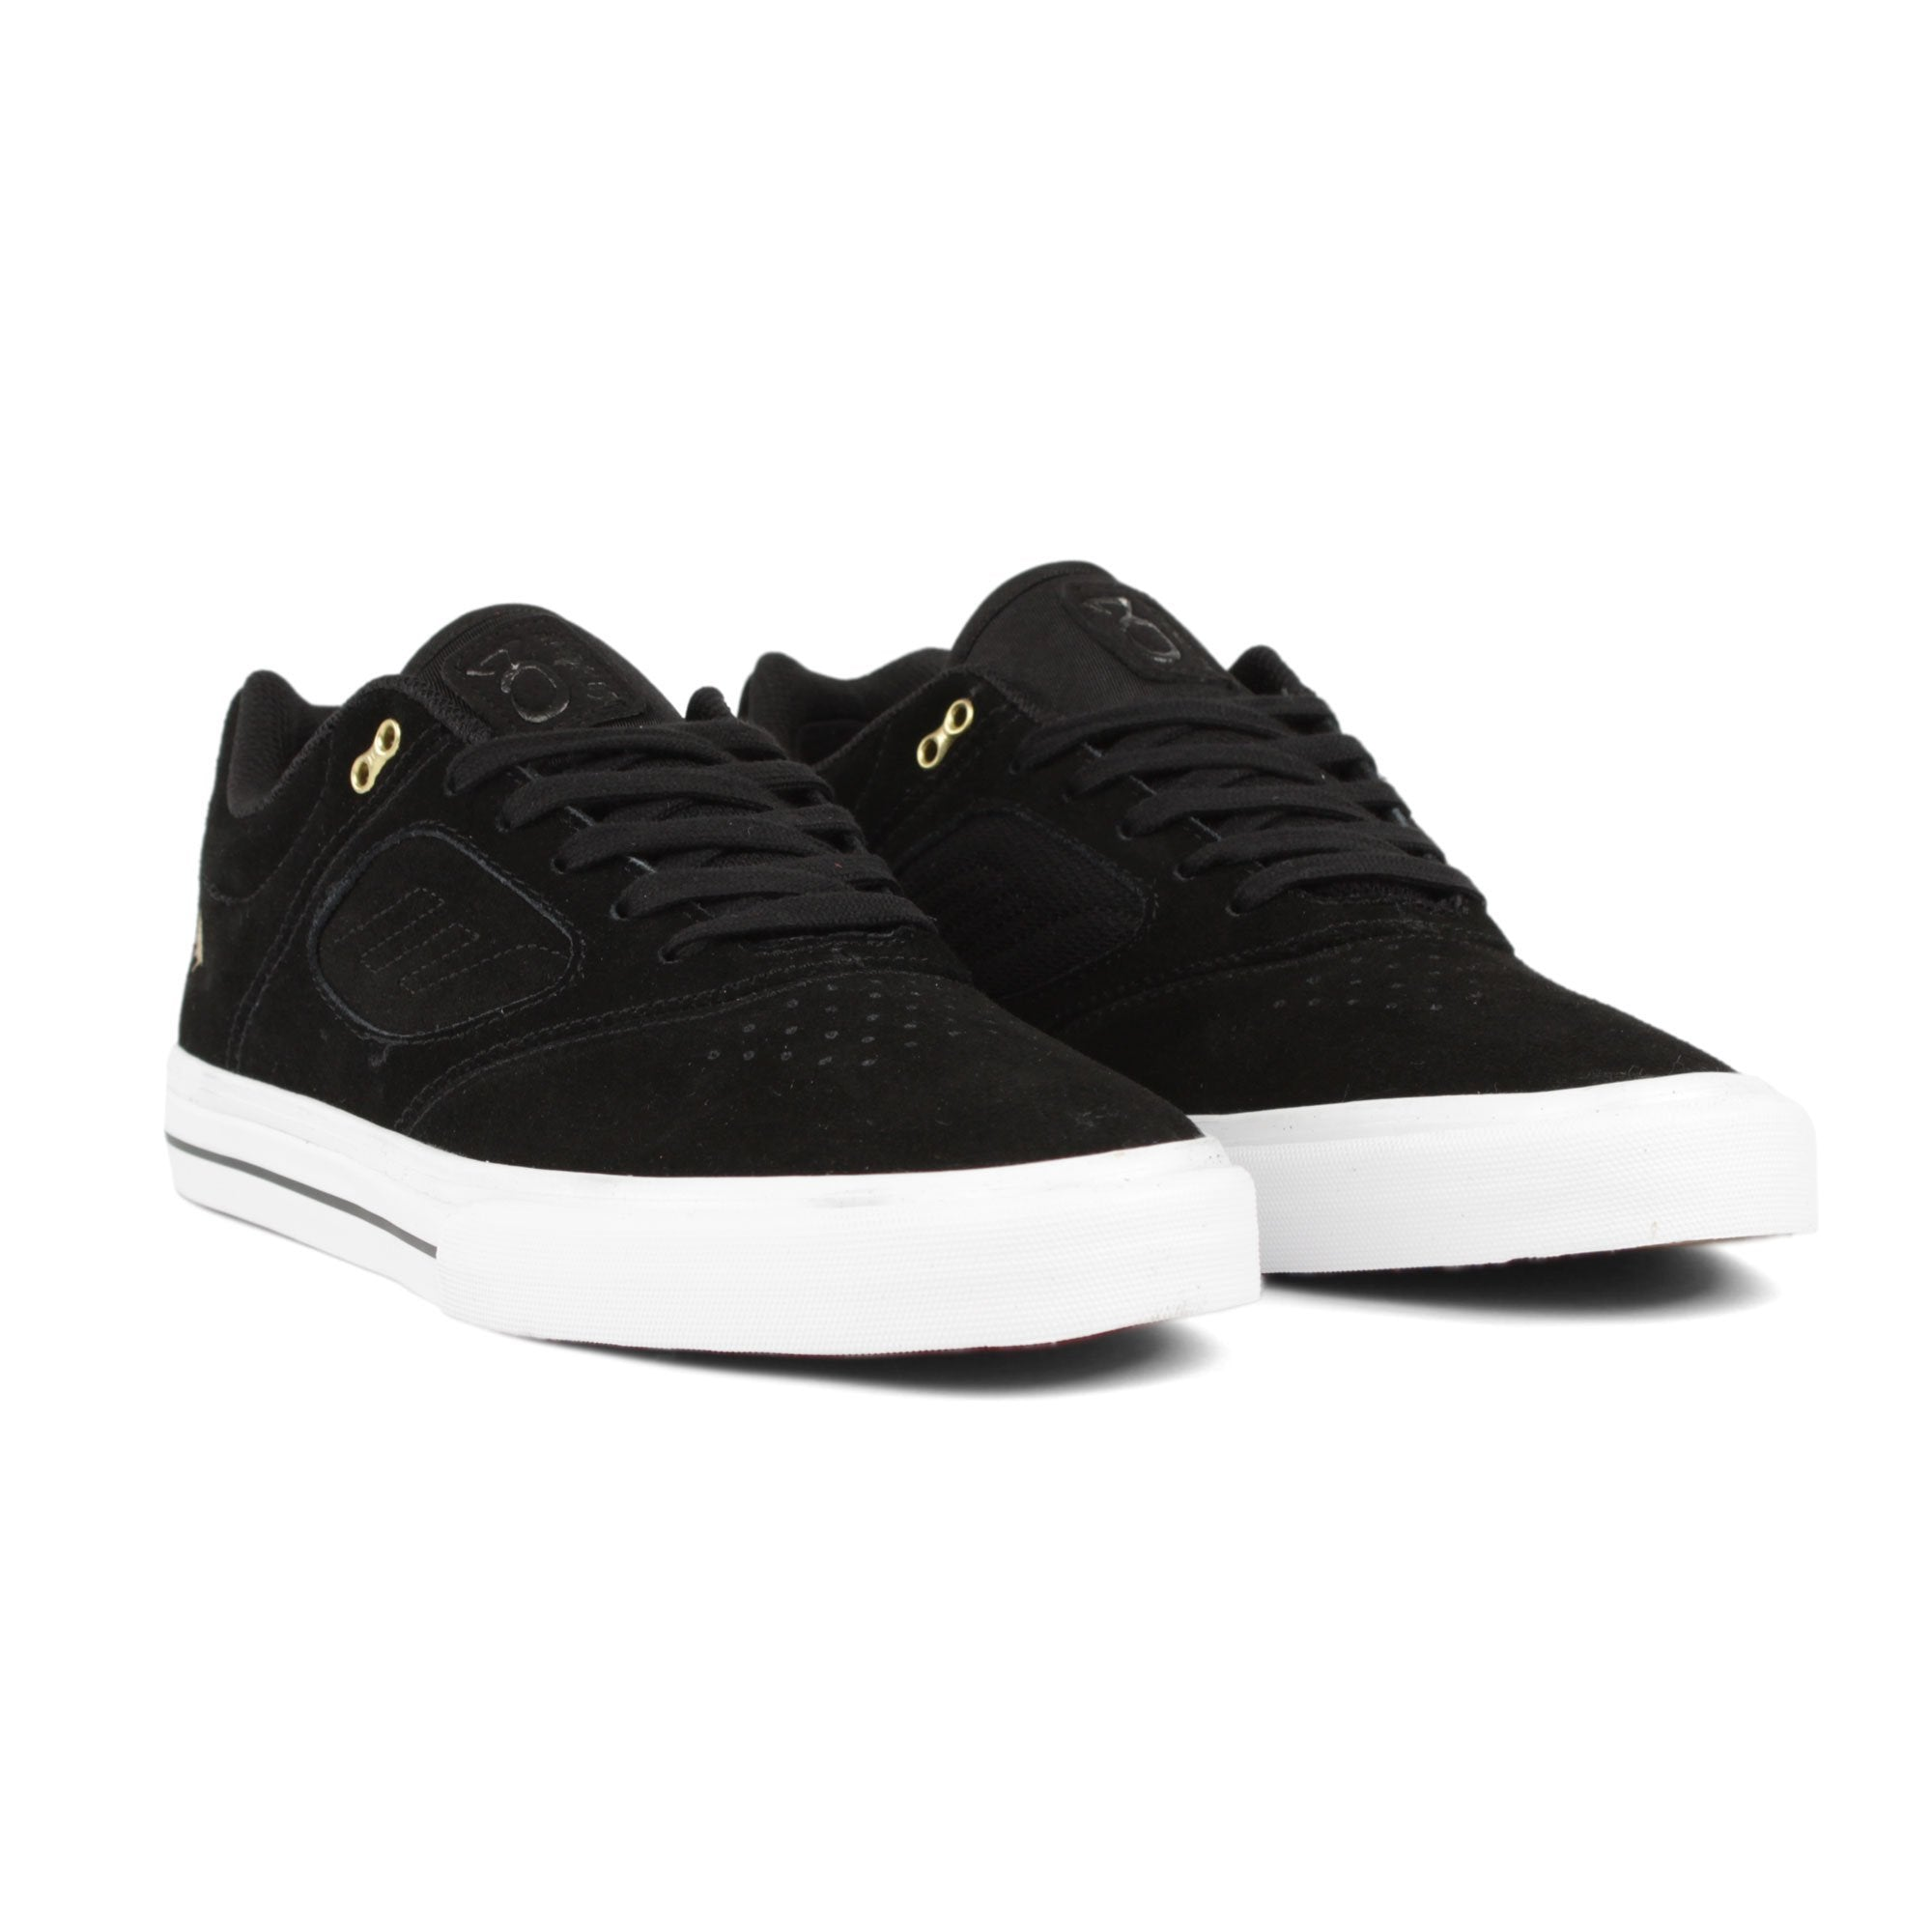 Emerica Reynolds 3 G6 Product Photo #2